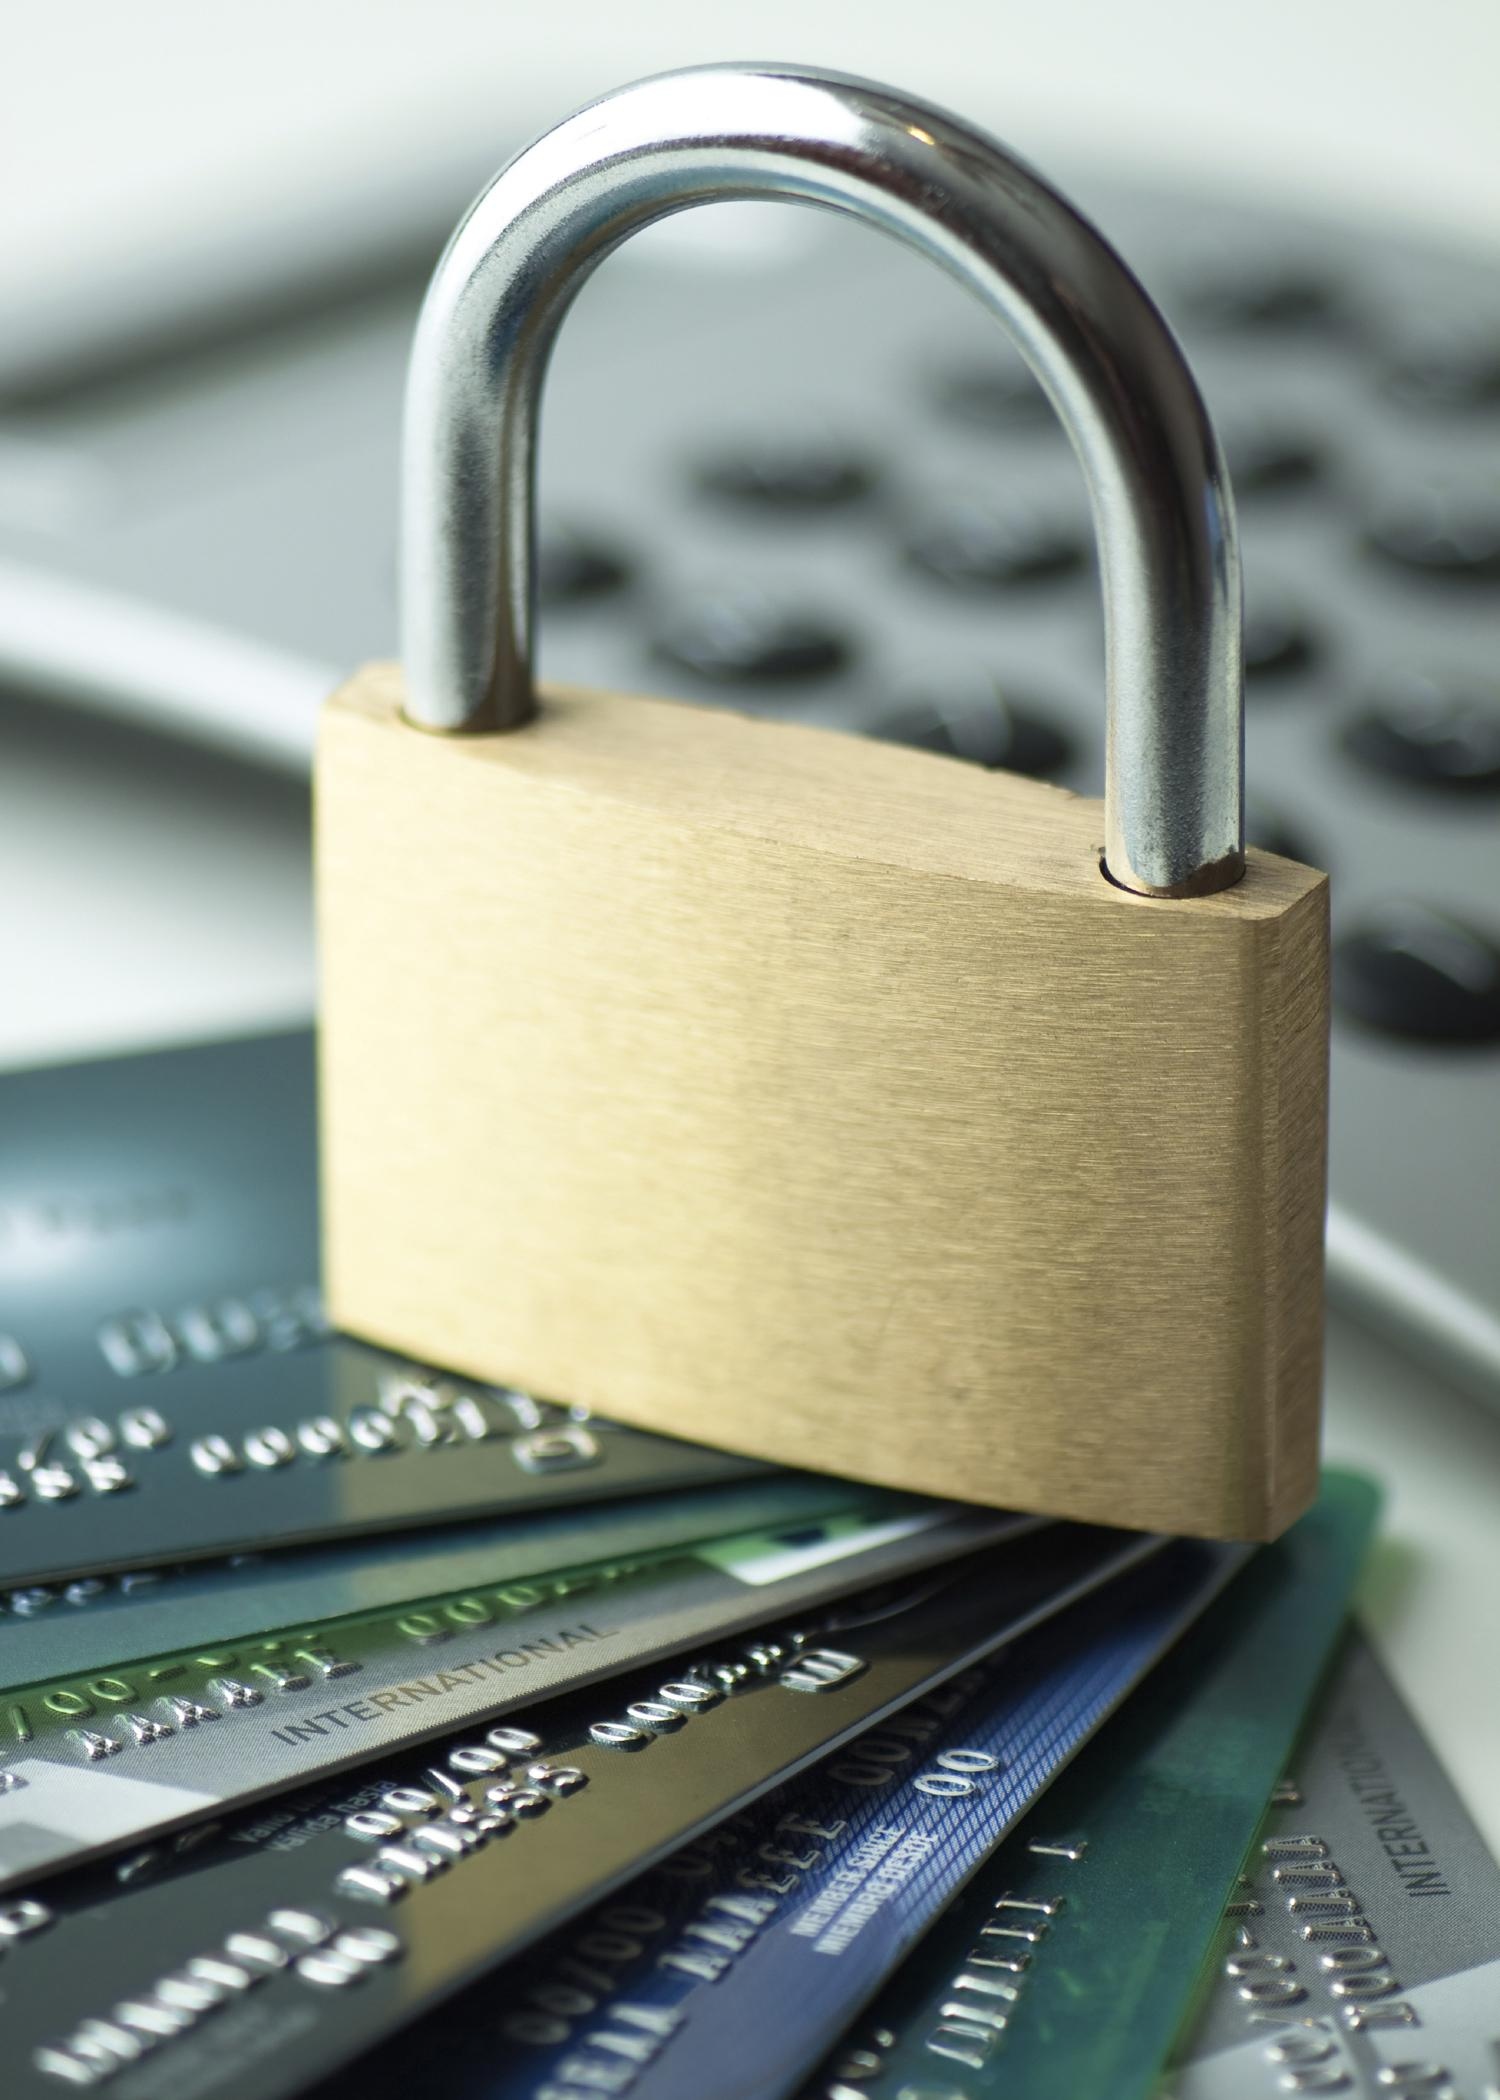 Consumers can keep financial and personal information safe by following a few simple guidelines when shopping this holiday season. (Photo by MarsBars/iStockphoto)